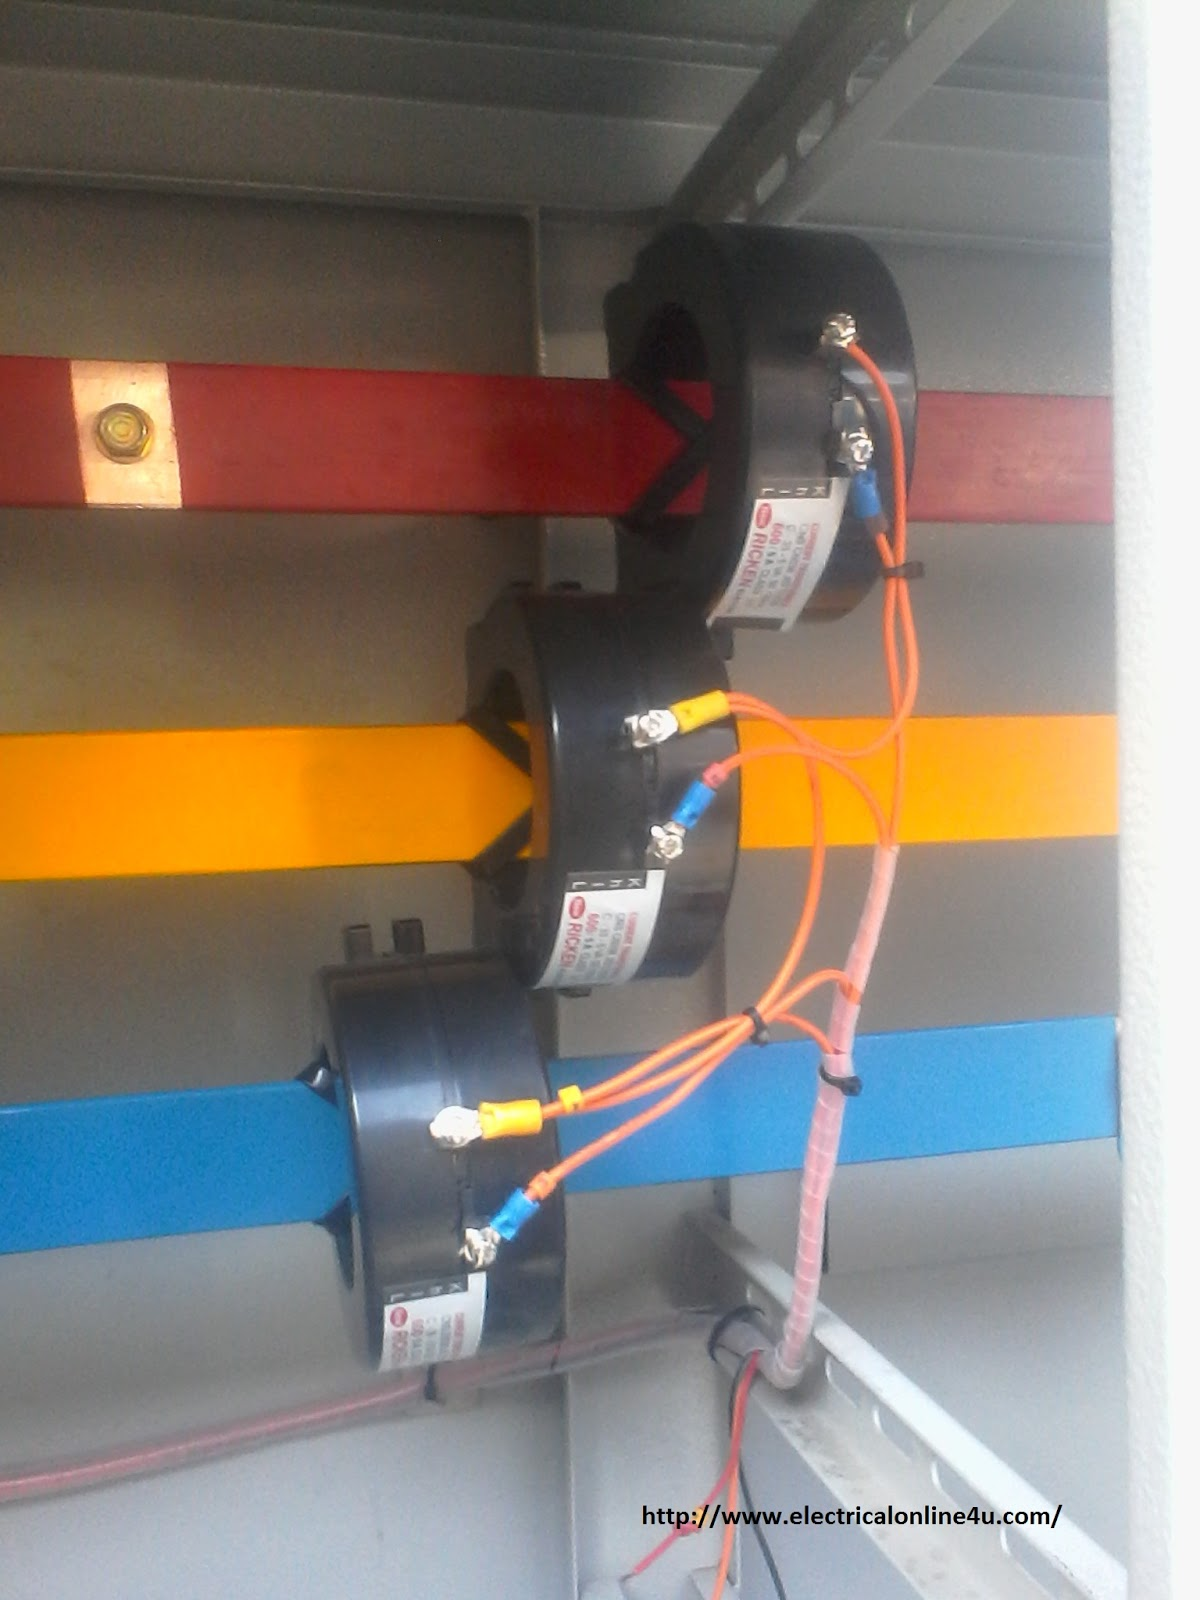 current%2Btransformer%2Binstillation%2Bfor%2Bthree%2Bphase%2Bwiring current transformer installation for three phase power supply ct Basic Electrical Wiring Diagrams at crackthecode.co